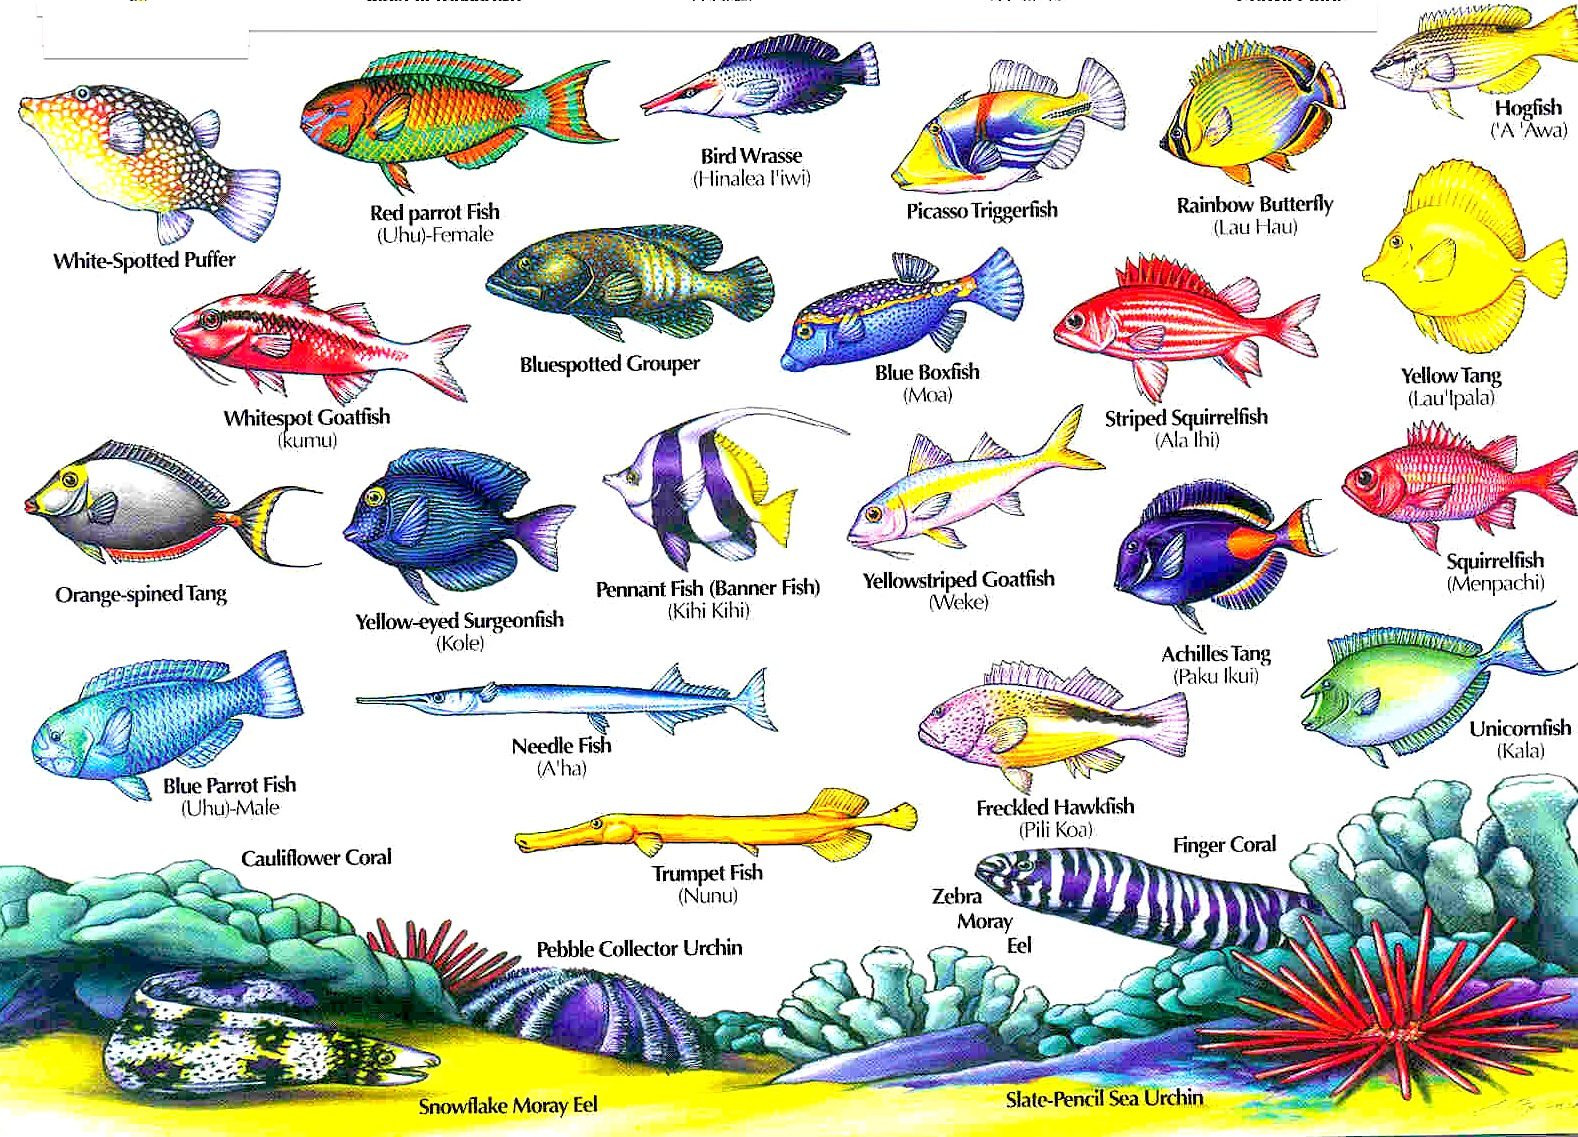 Fish aquarium guide - Big Island Hawaii Reef Fish Pictures